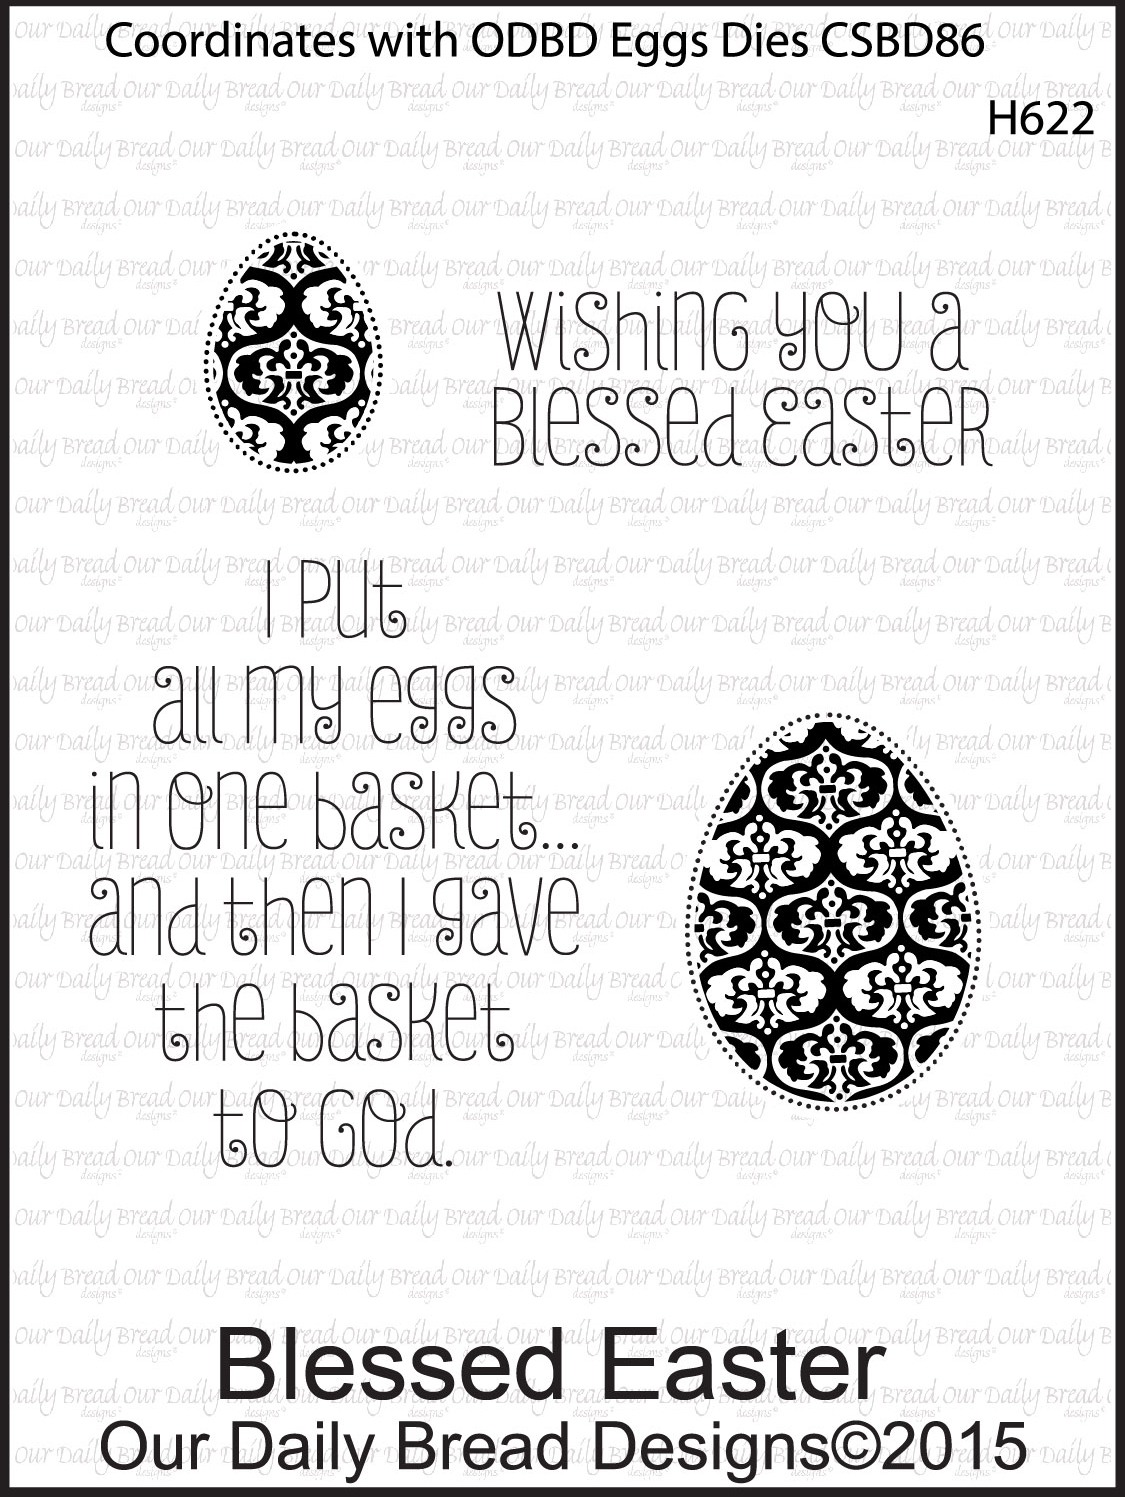 https://www.ourdailybreaddesigns.com/index.php/h622-blessed-easter.html